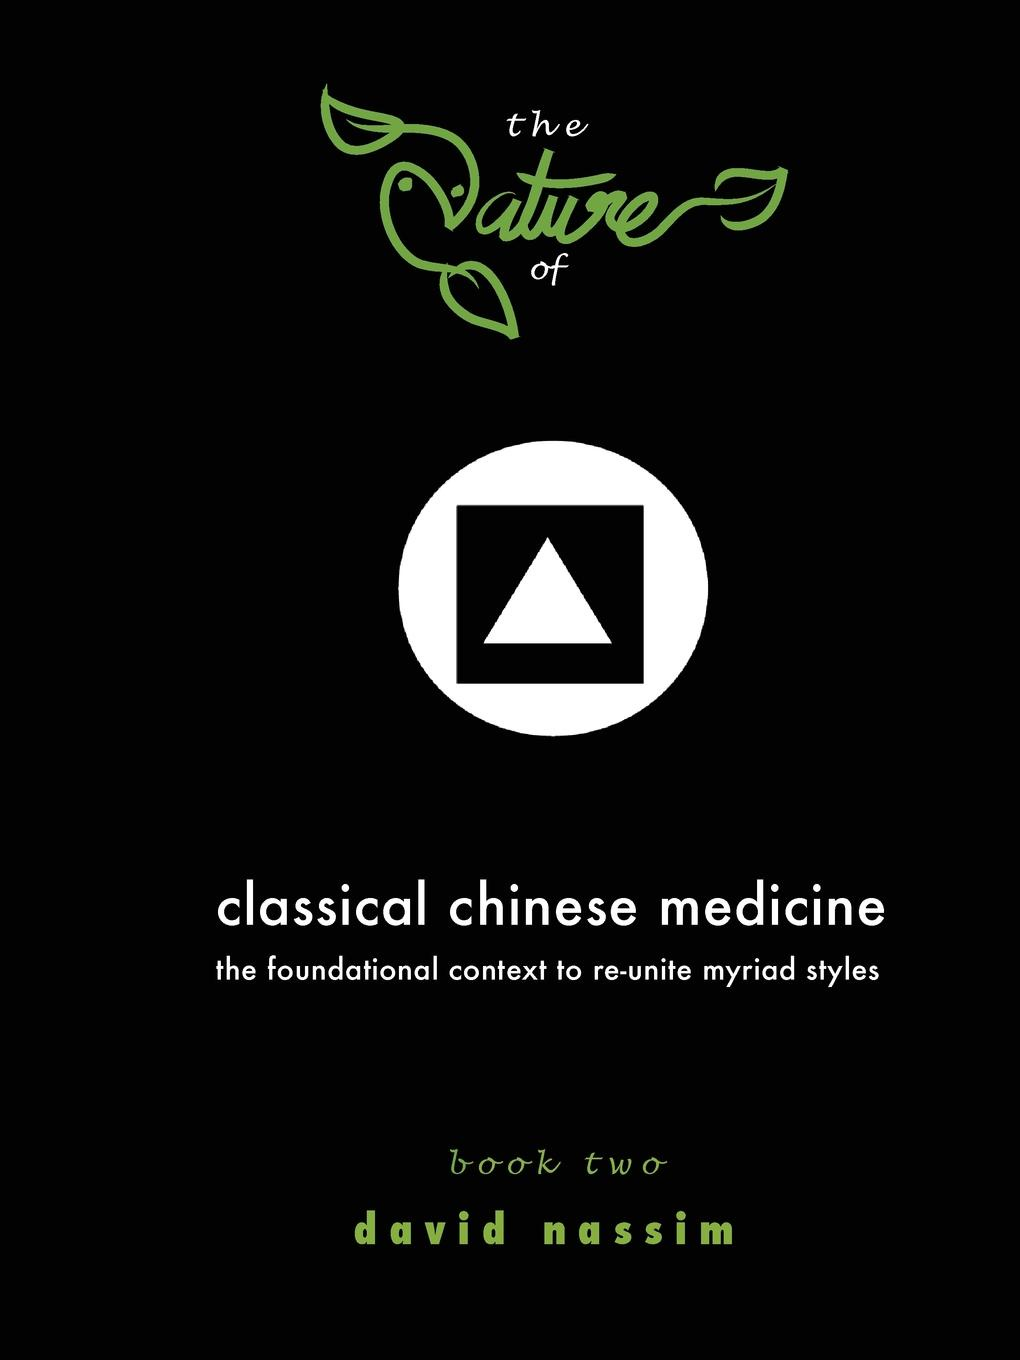 David Nassim The Nature of Classical Chinese Medicine (Book 2 of 2) the eye of the world the wheel of time book 2 chinese edition 400 page